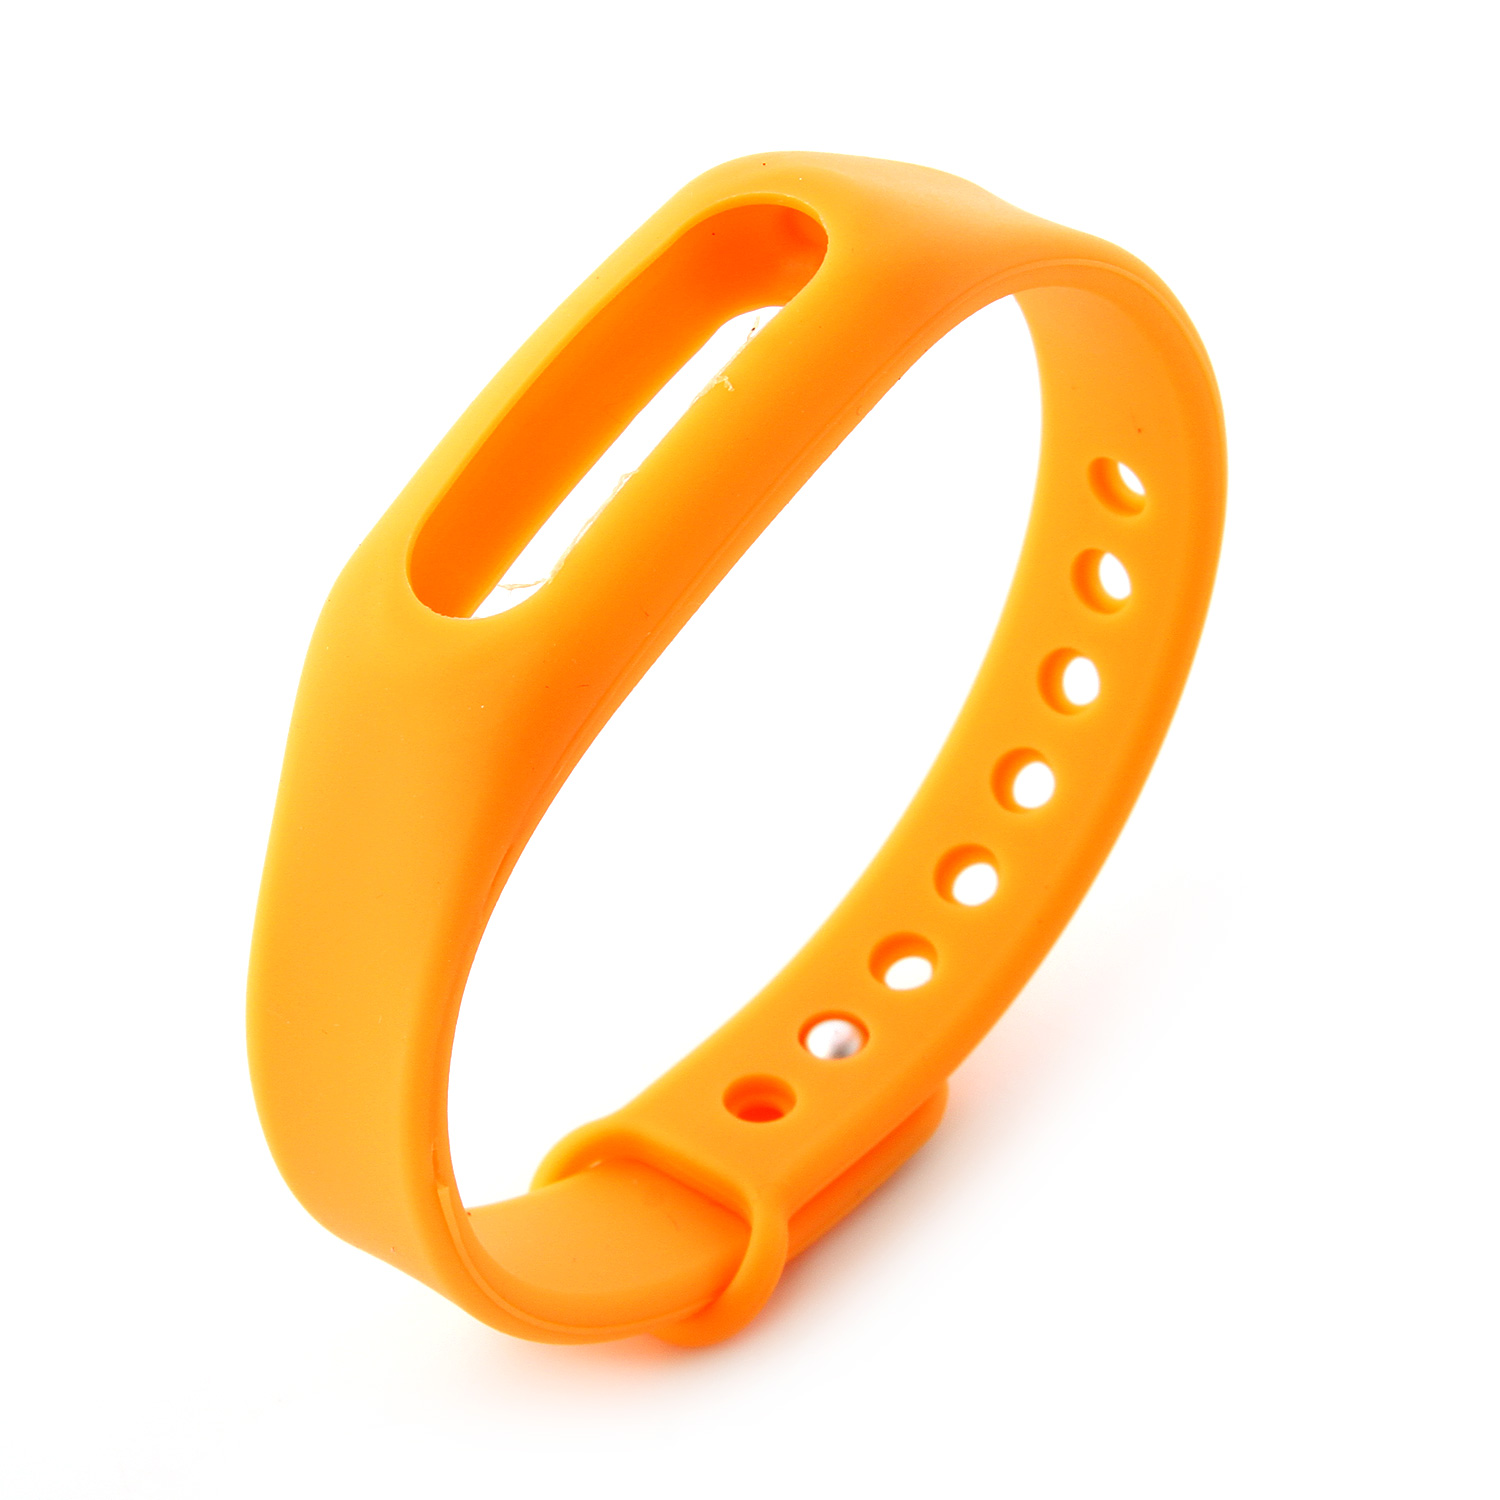 Replacement Wrist Strap Wearable Wrist Band for XIAOMI MI Band Bracelet- Orange